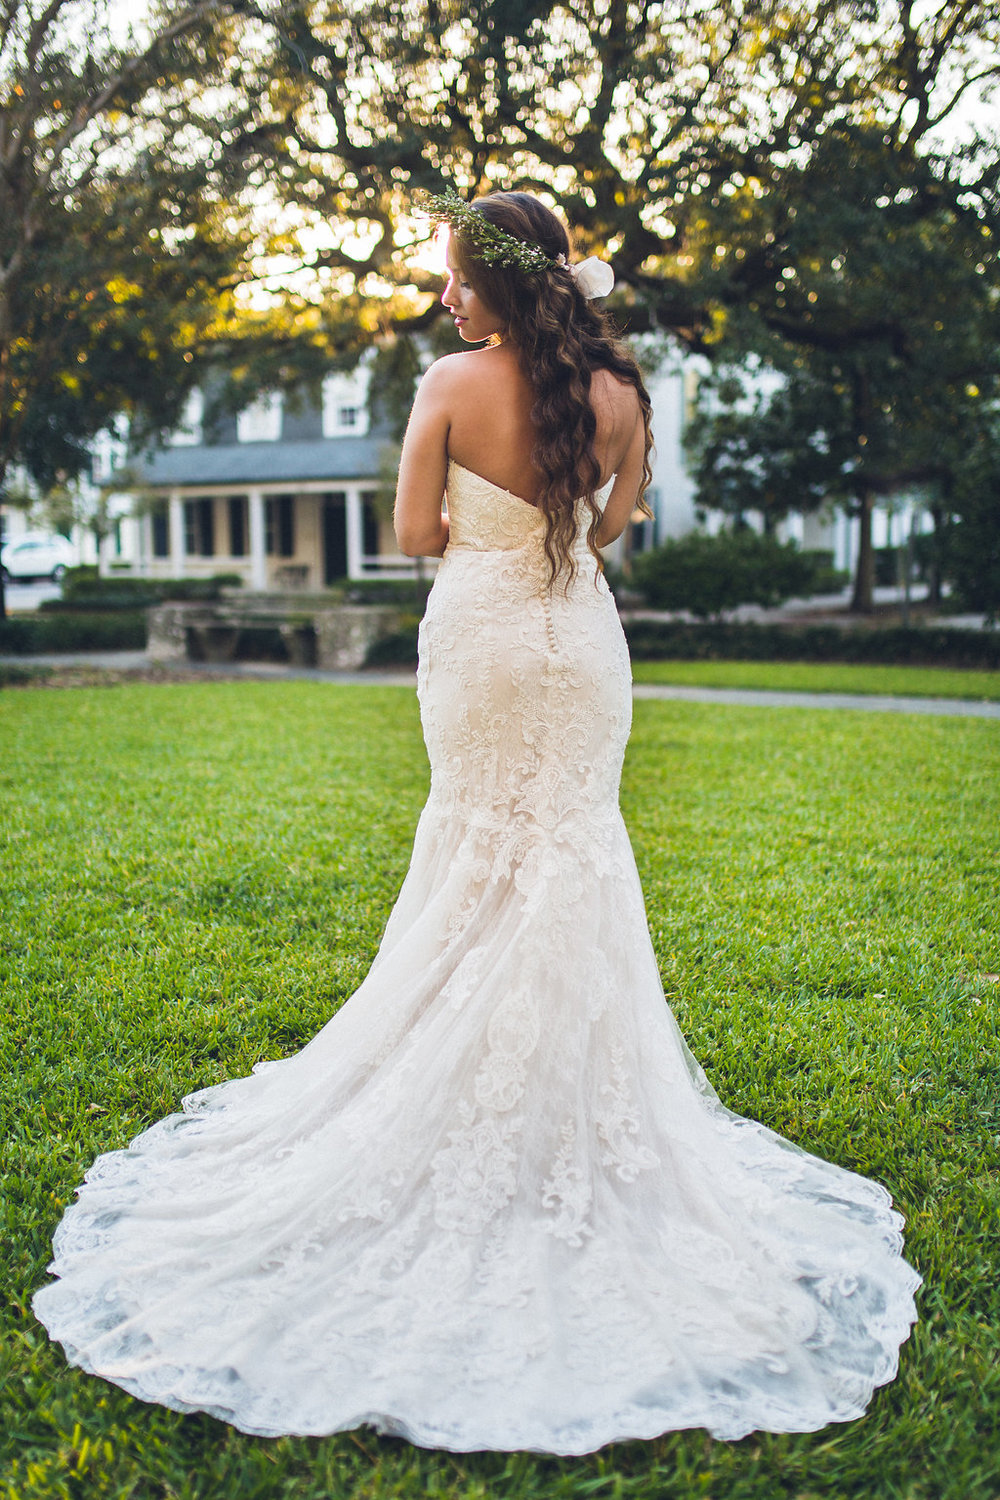 alexis-sweet-photography-ivory-and-beau-bridal-boutique-mirelle--maggie-sottero-rebecca-ingram-lace-mermaid-savannah-wedding-savannah-square-wedding-flower-crown-boho-bride-savannah-wedding-planner-savannah-bridal-boutique-savannah-florist-10.jpg